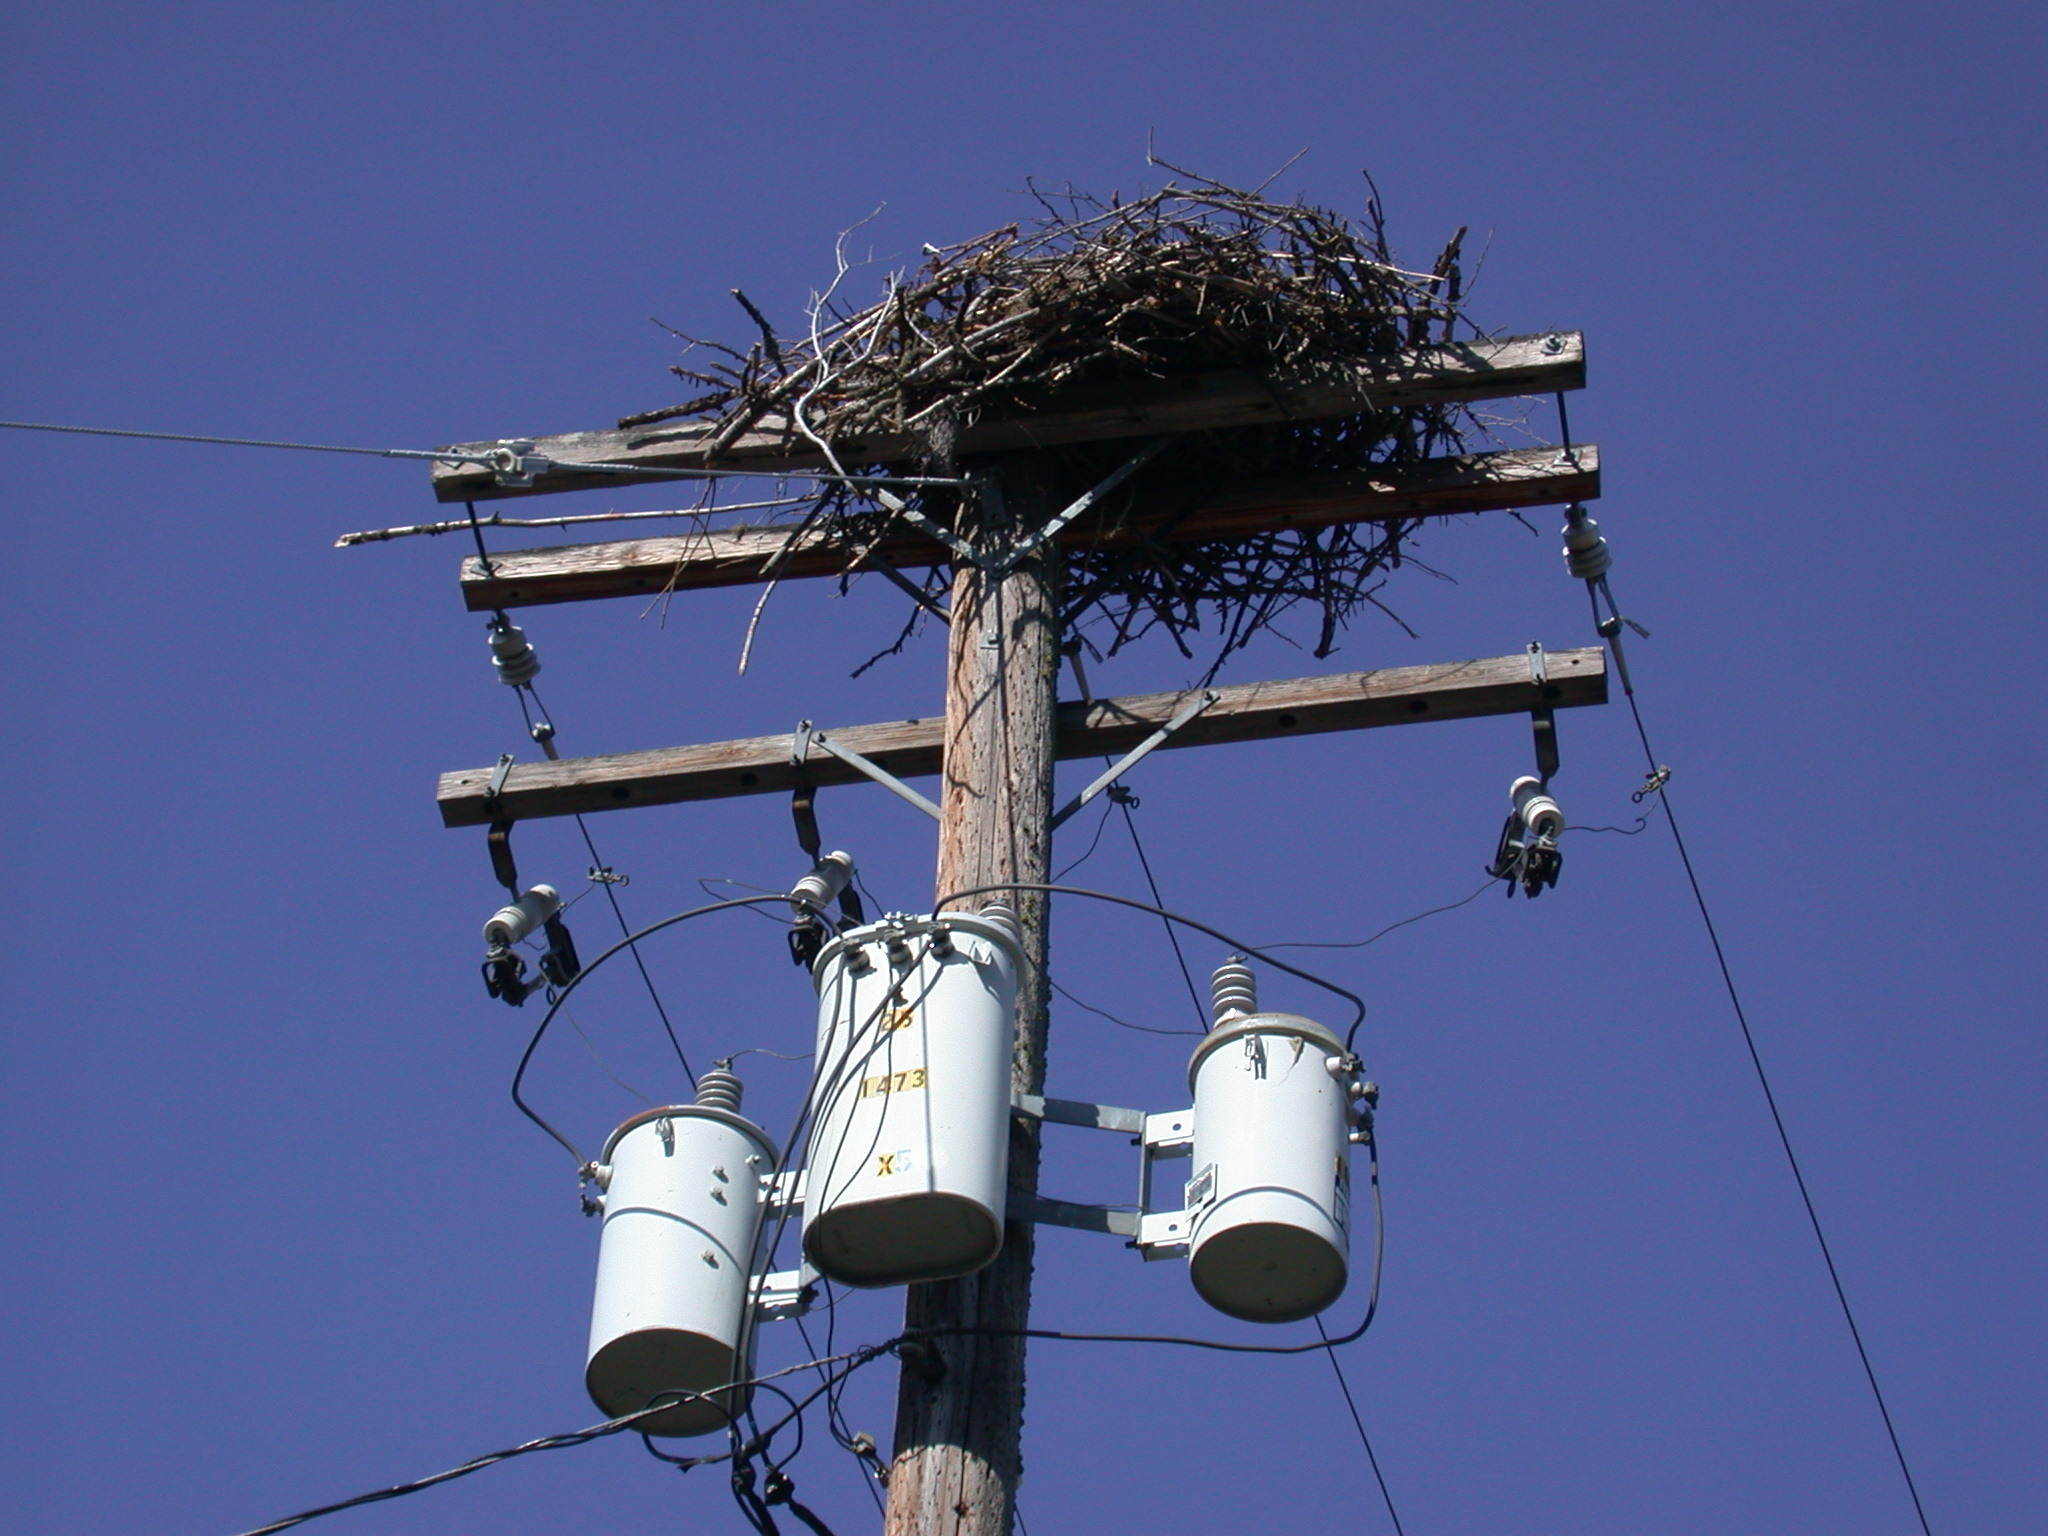 Raptor nest in power lines